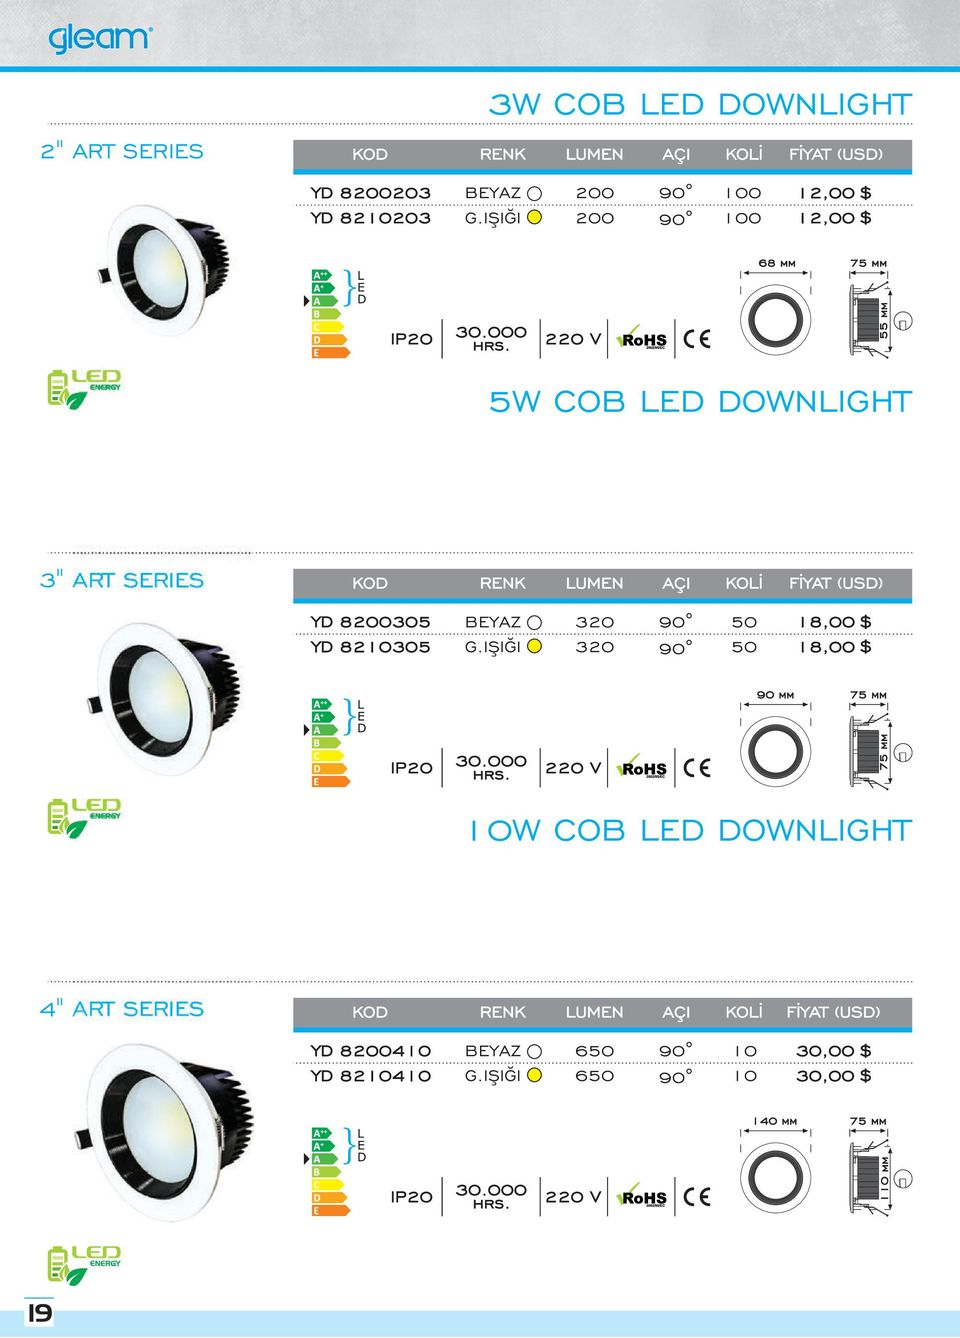 YD 82305 3 3 90 90 18,00 18,00 90 mm 75 mm 75 mm W COB LED DOWNLIGHT